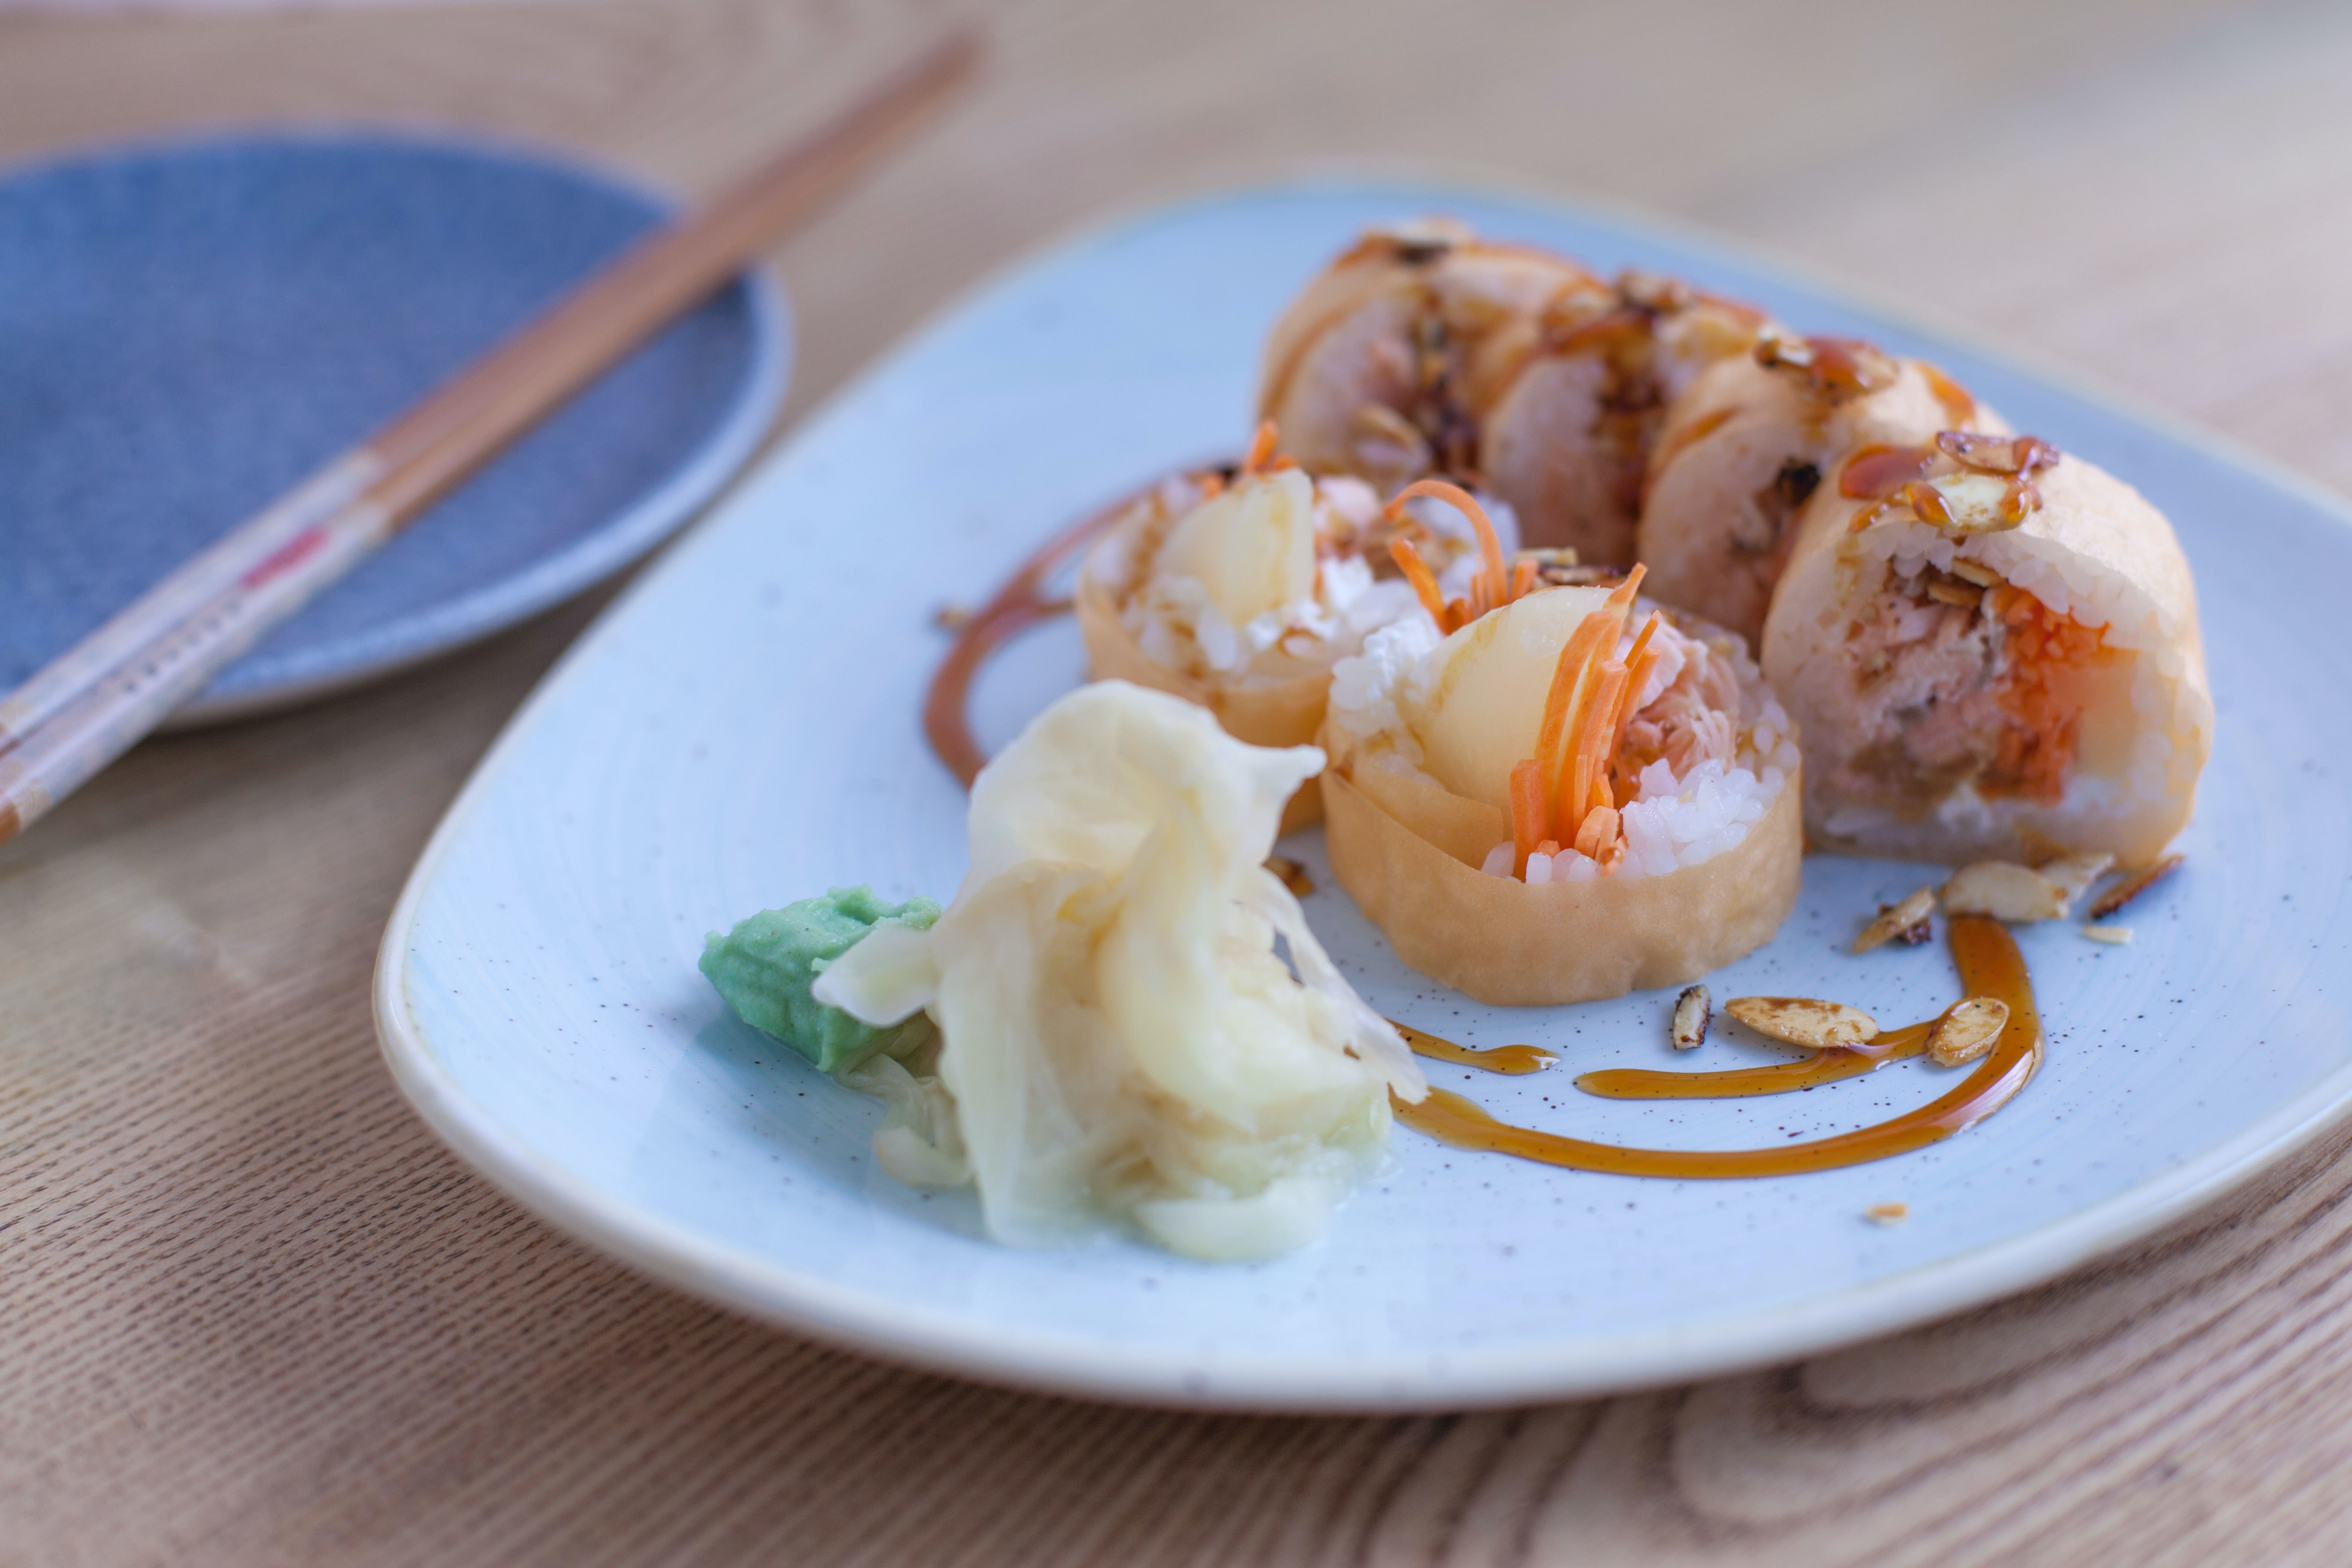 A plate of sushi with caramel colored sauce.